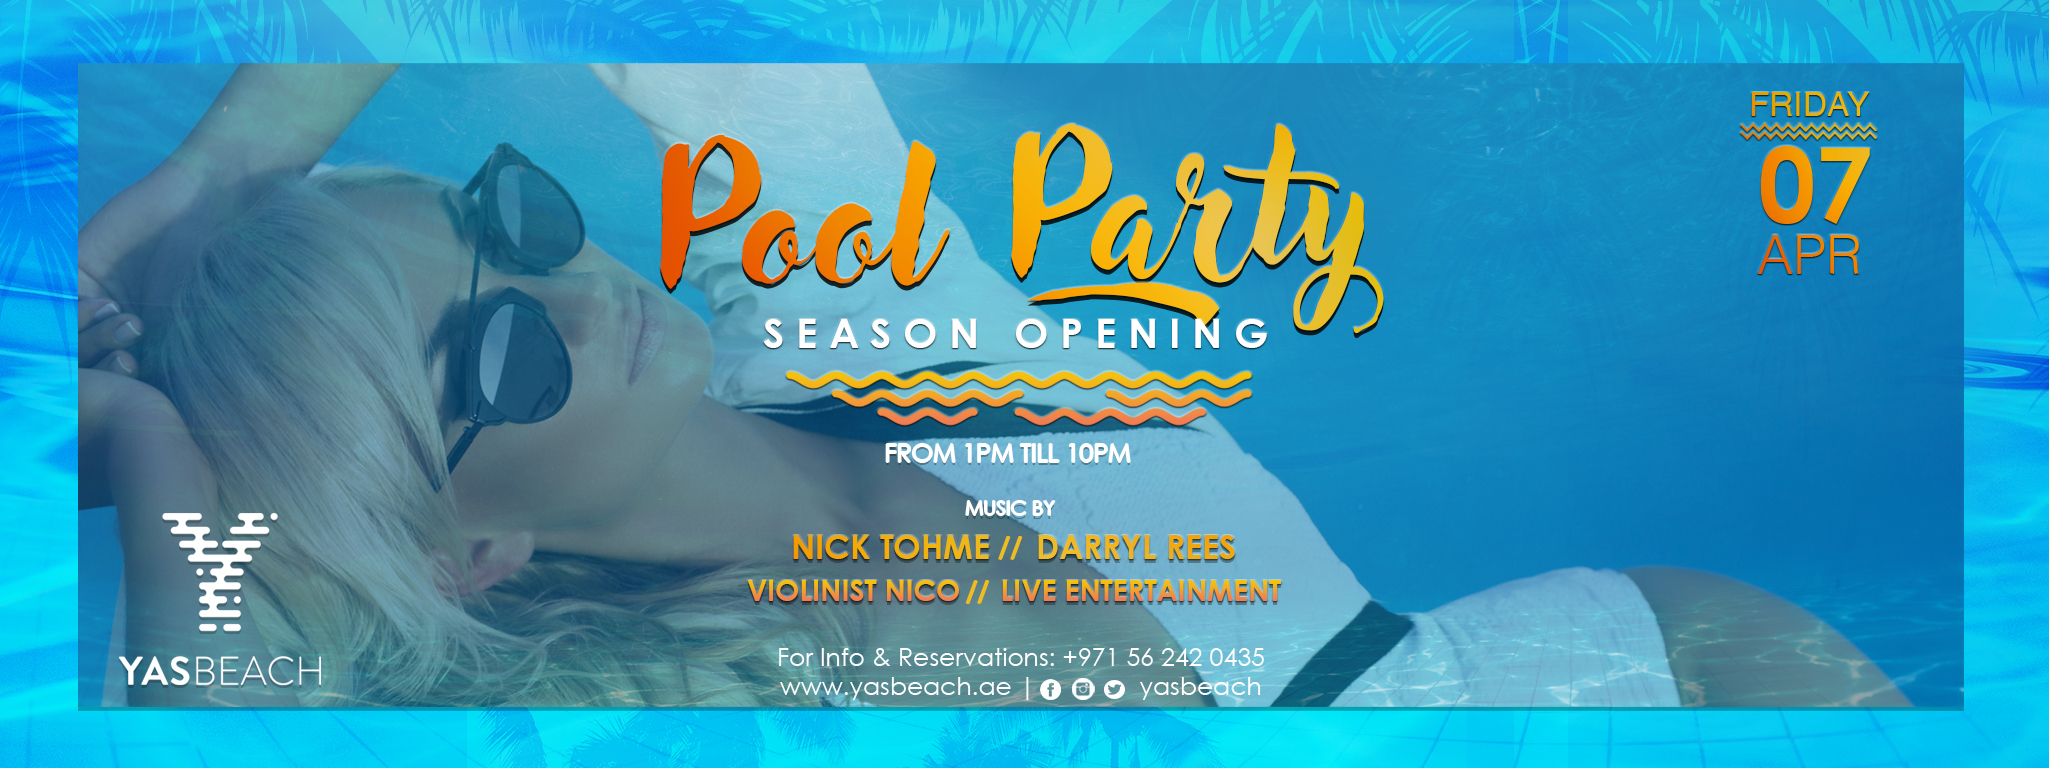 Season Opening Pool Party @ Yas Beach